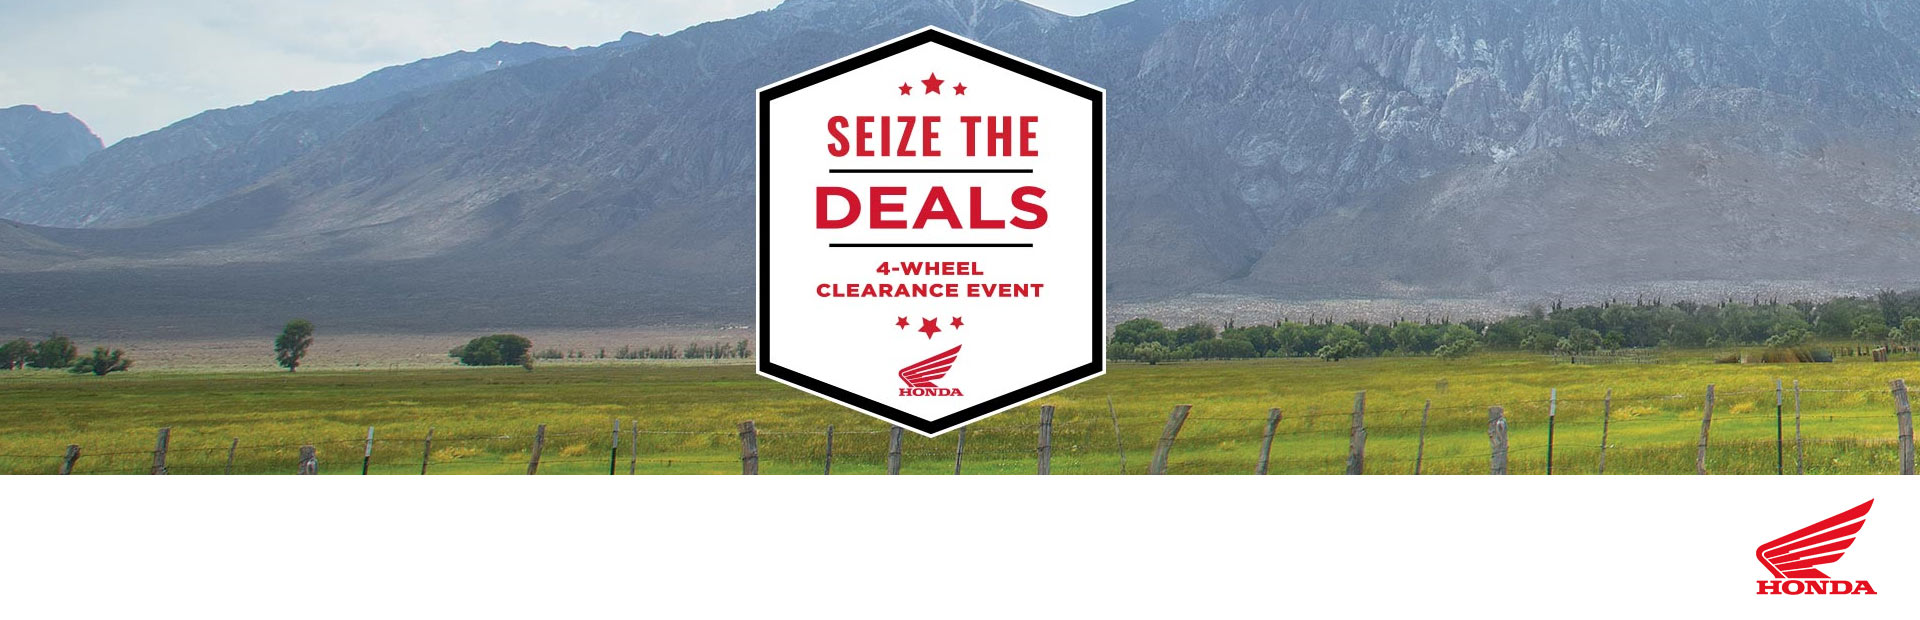 Honda: Seize The Deals - Factory-To-Dealer Incentives